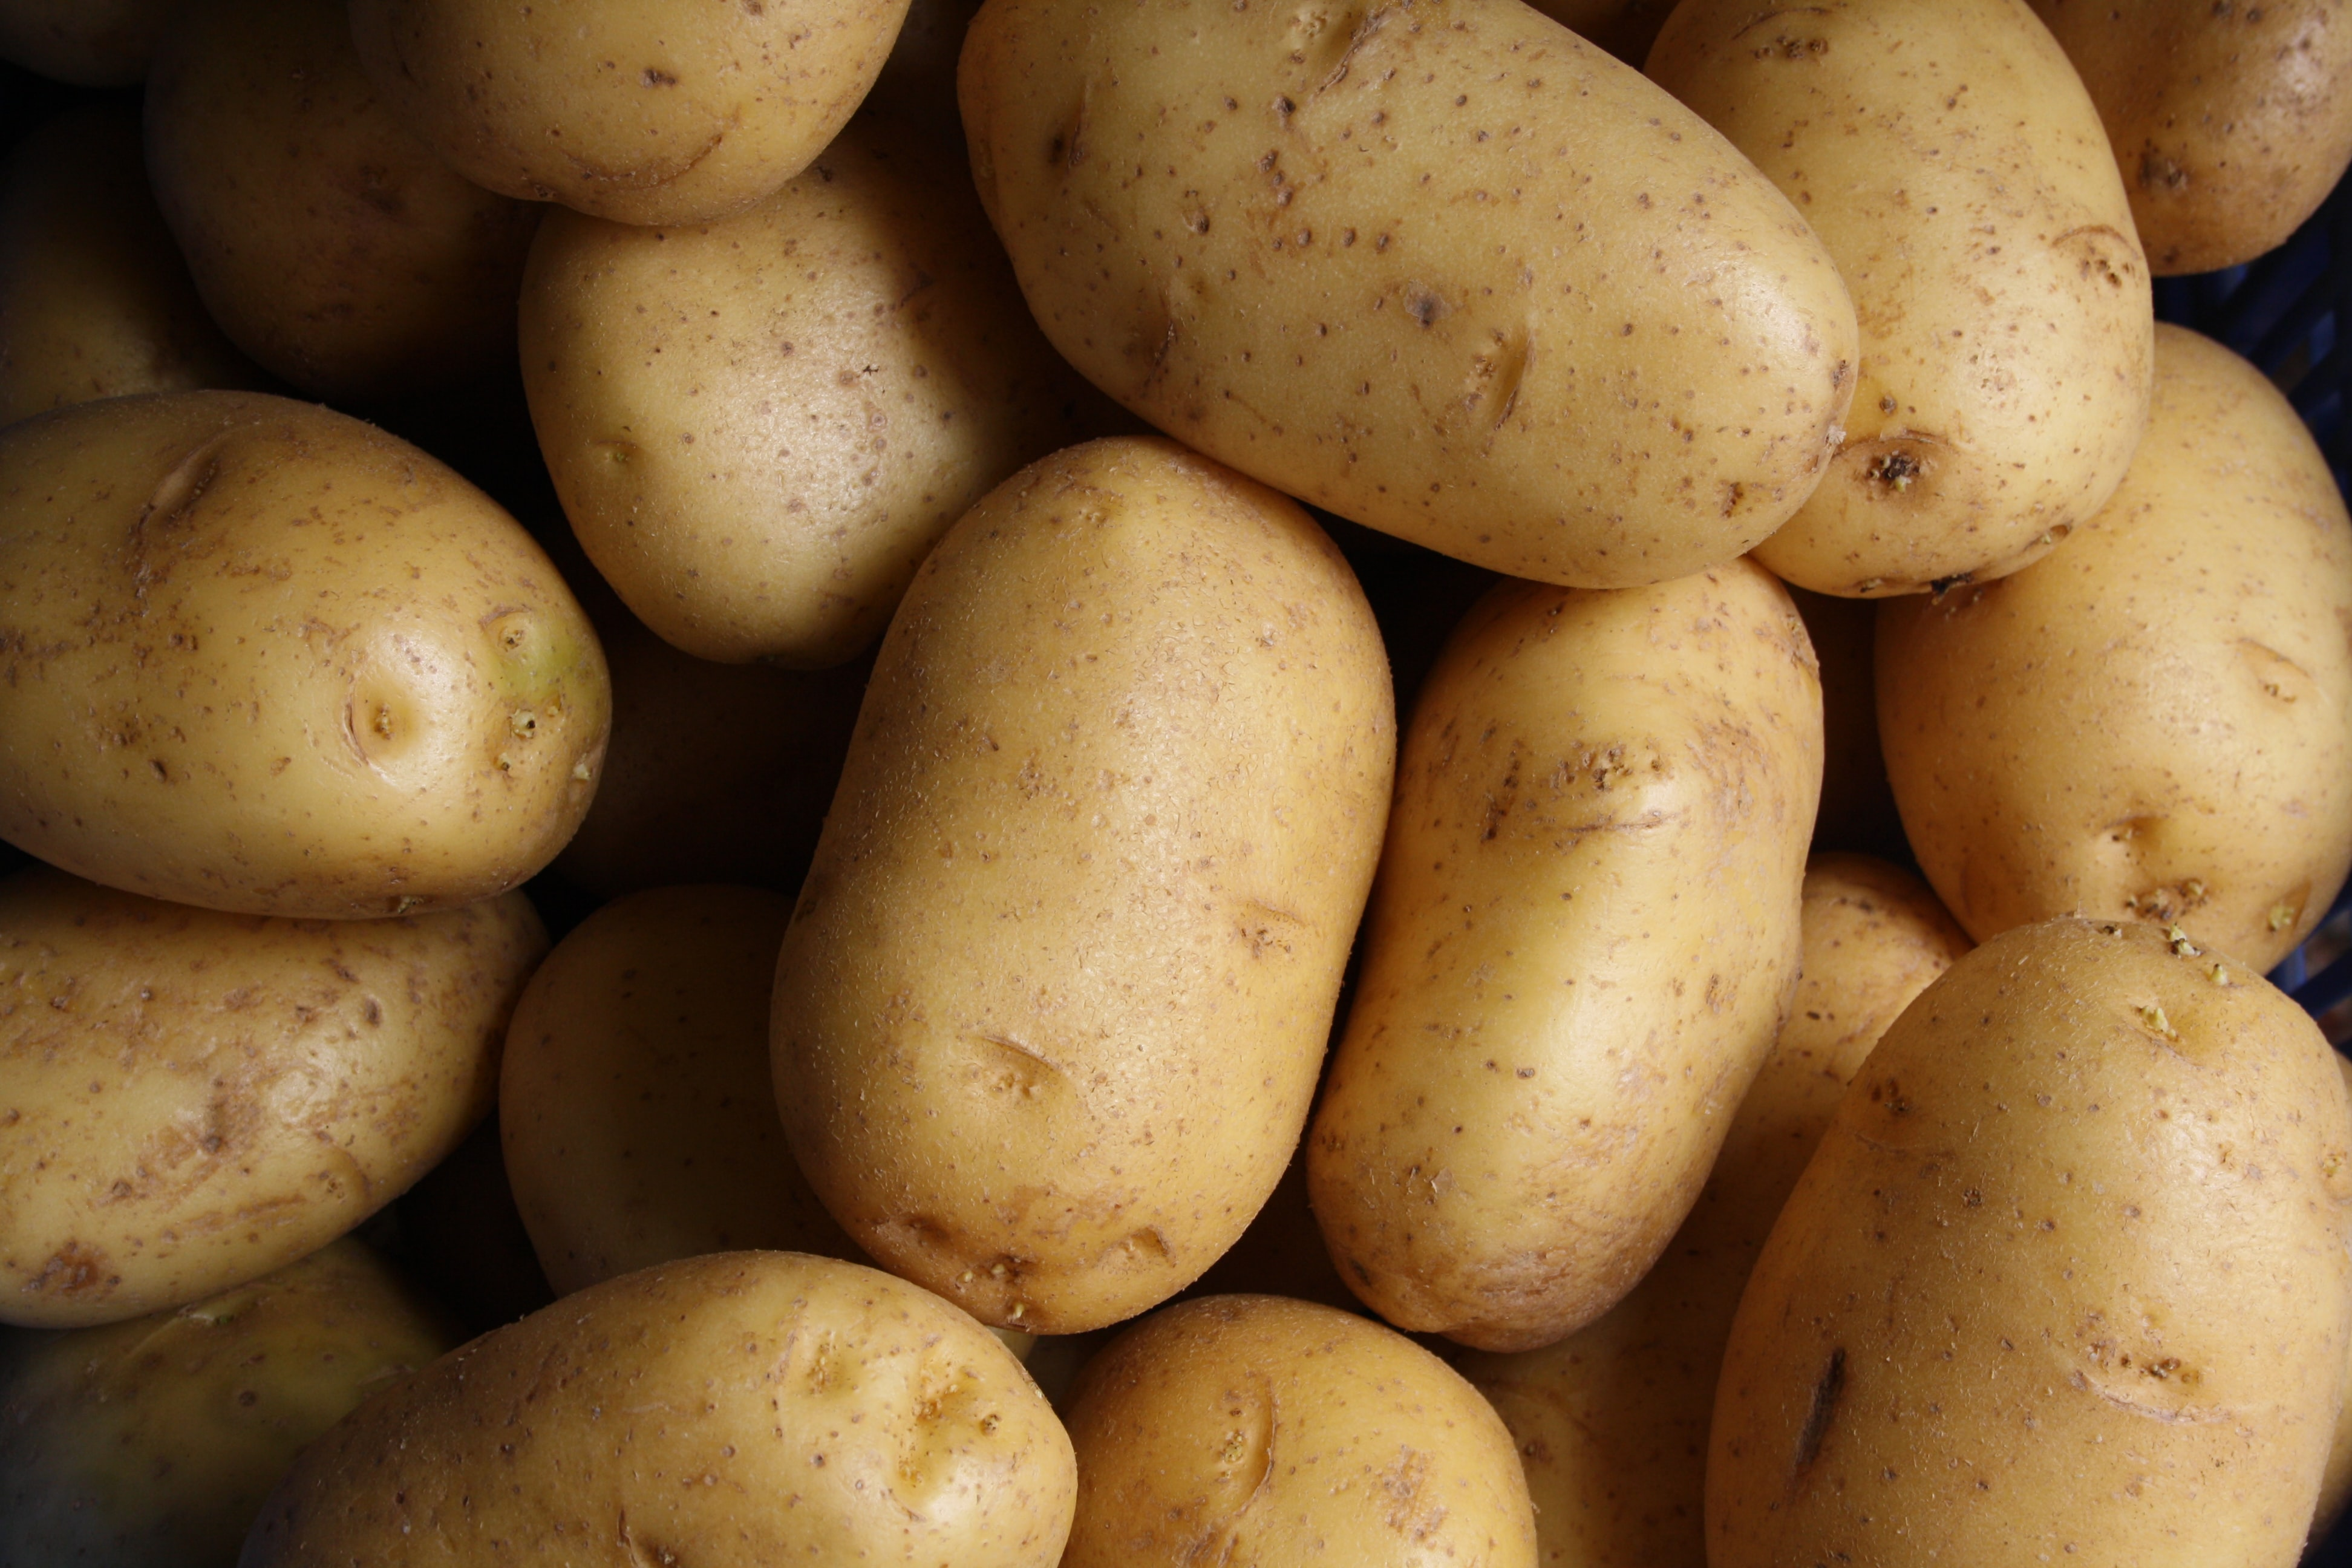 A crop of potatoes. (Photo by Lars Blankers on Unsplash)